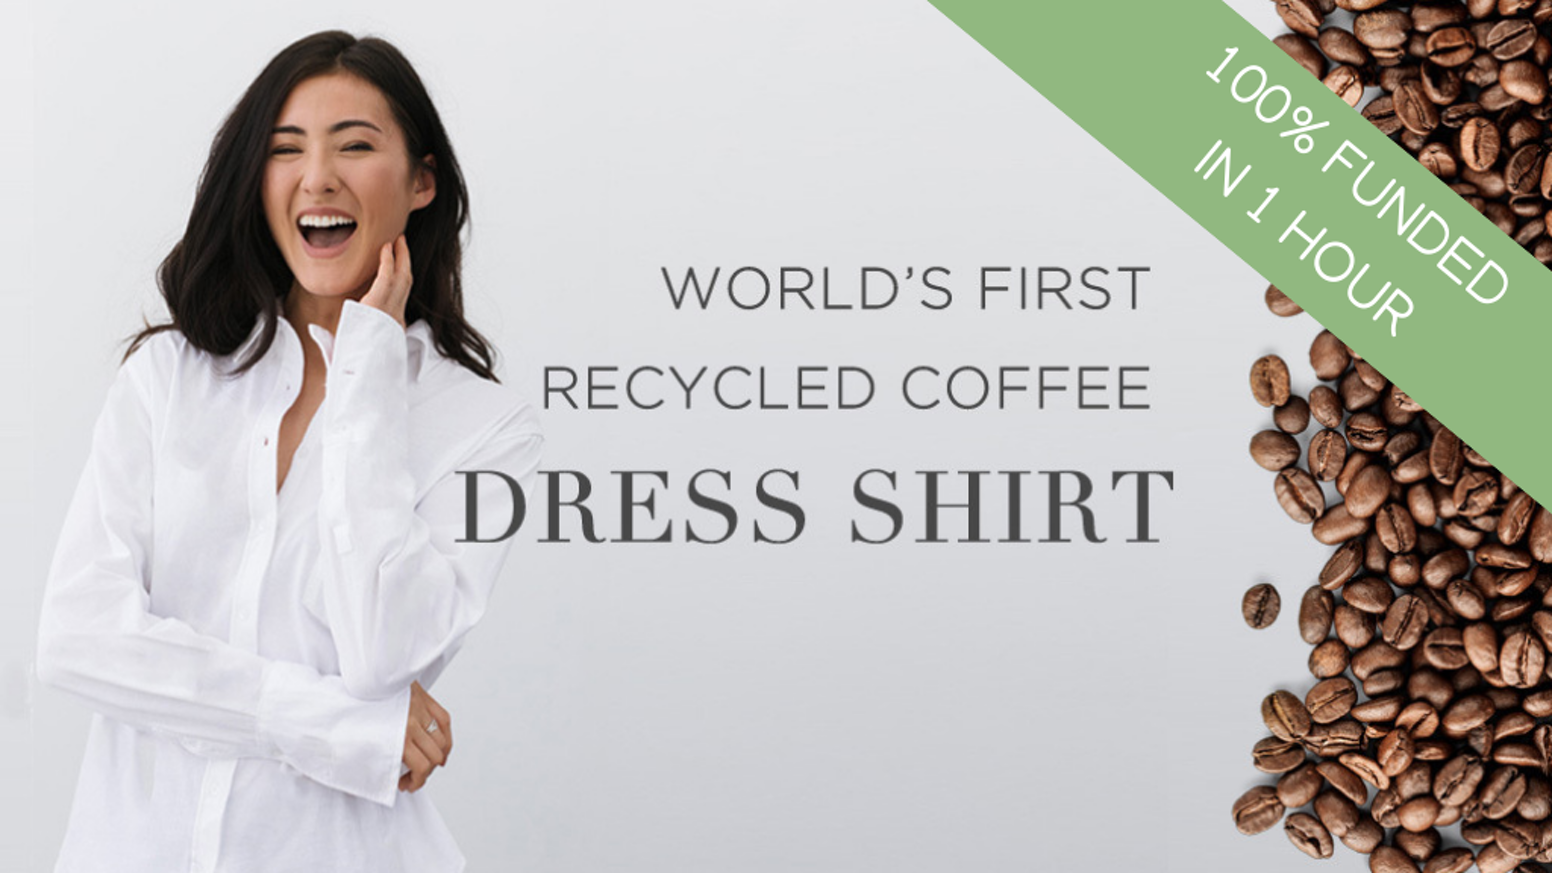 LEZÉ The Label - Fit, Form, Function. Dress shirts made from recycled coffee that will change the way you work... and live.